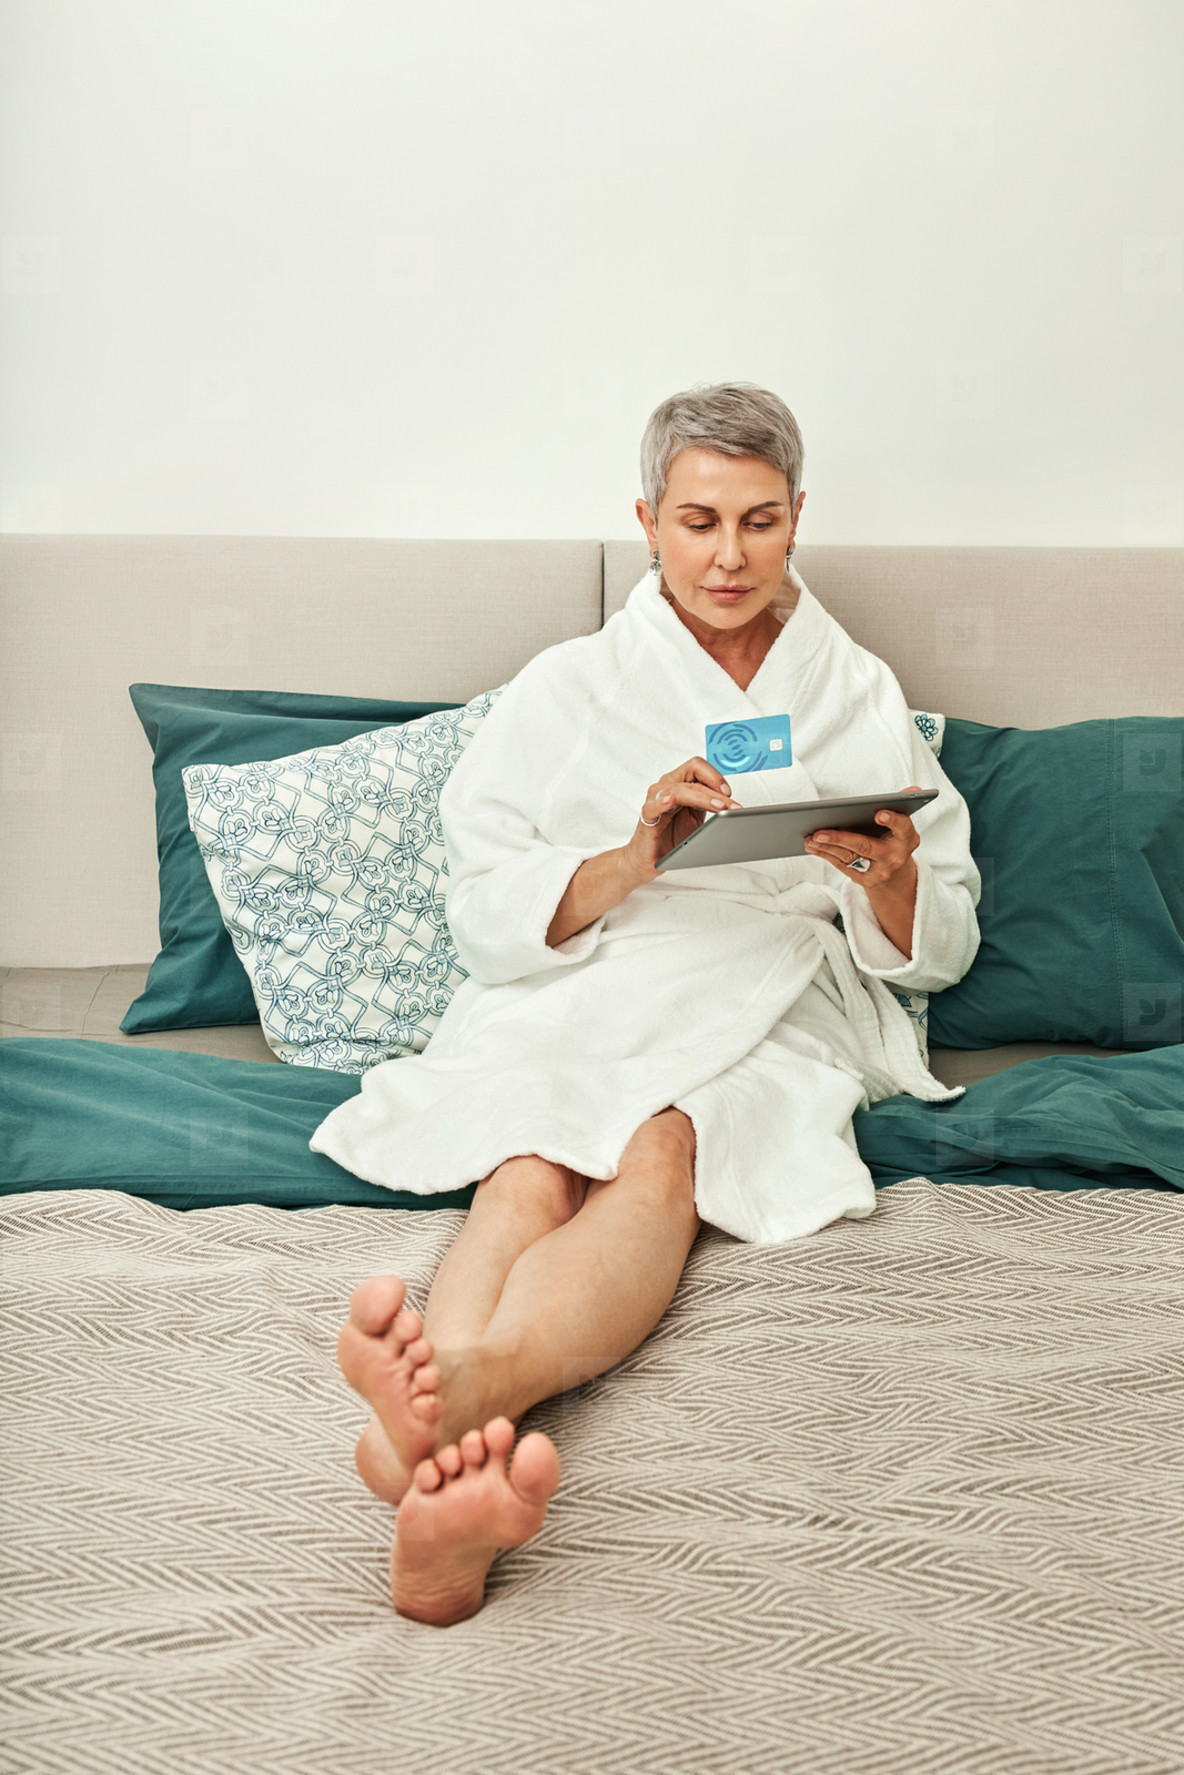 Mature woman in bathrobe lying on a bed holding a digital tablet and credit card  Senior female ordering from a hotel room